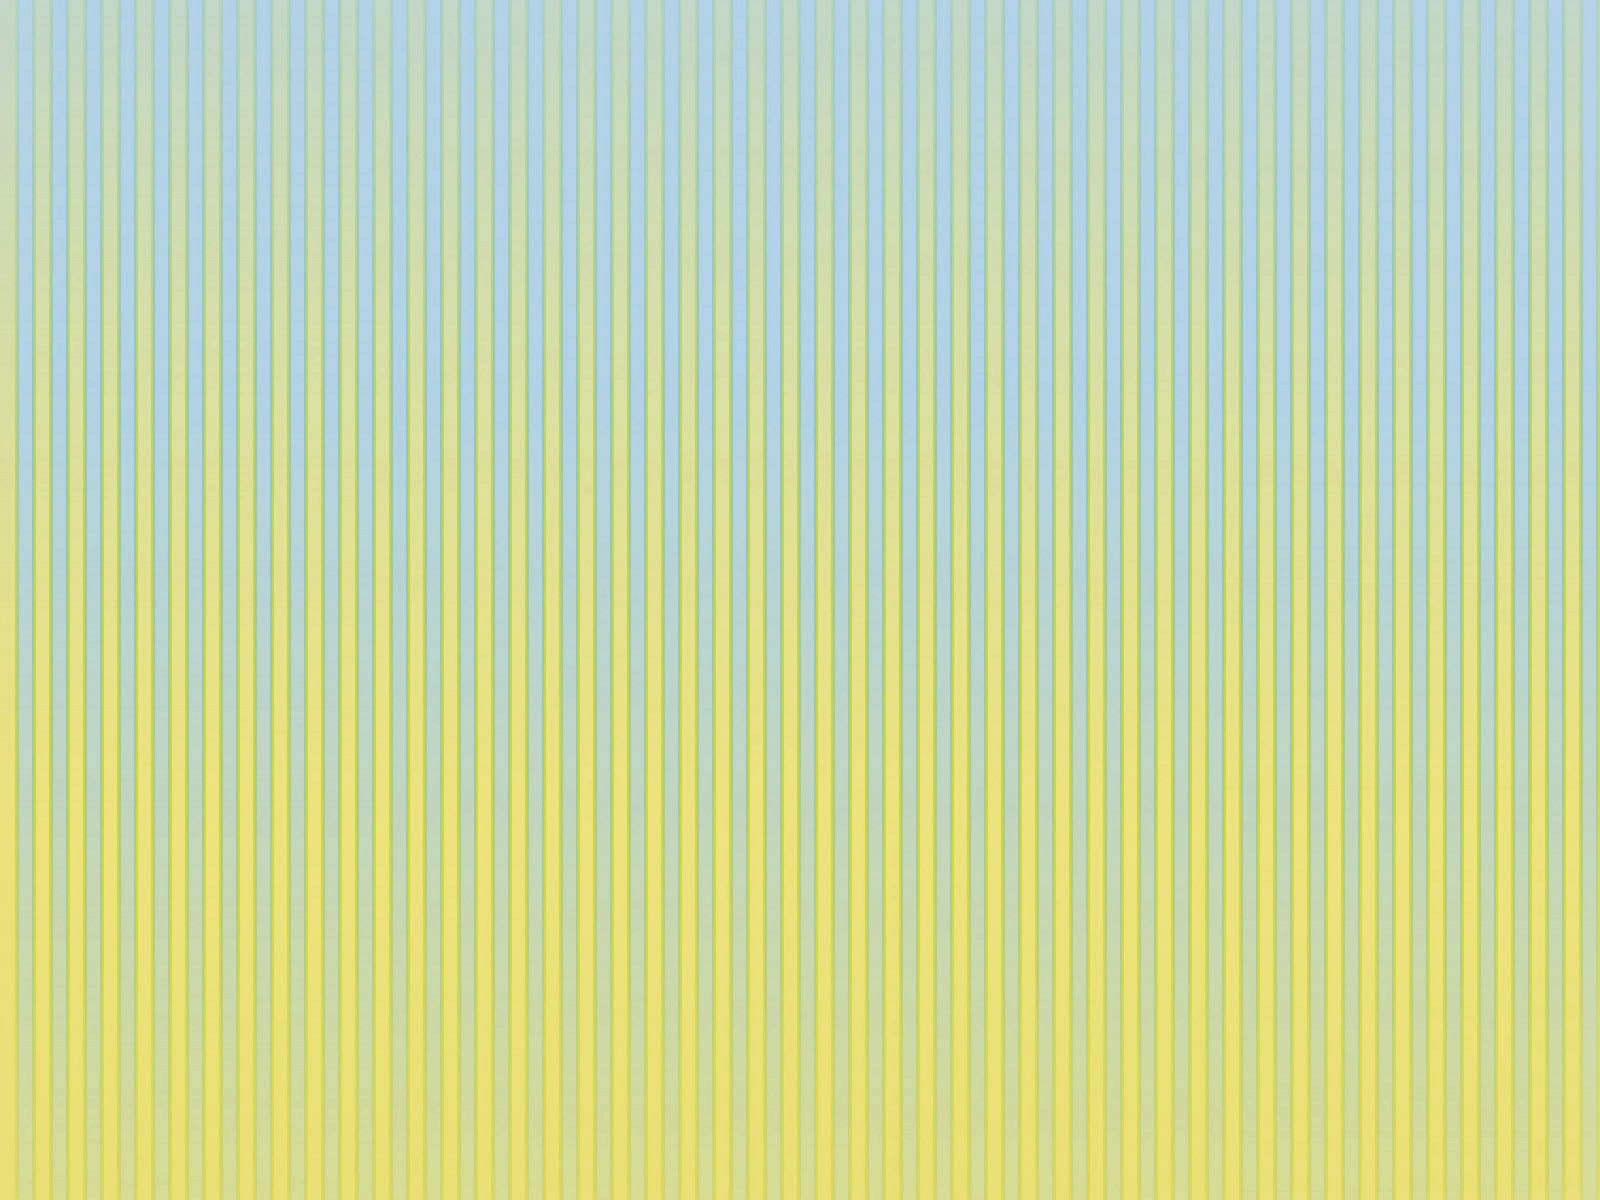 Blue And Yellow Striped Wallpaper: Blue And Yellow Striped Wallpaper